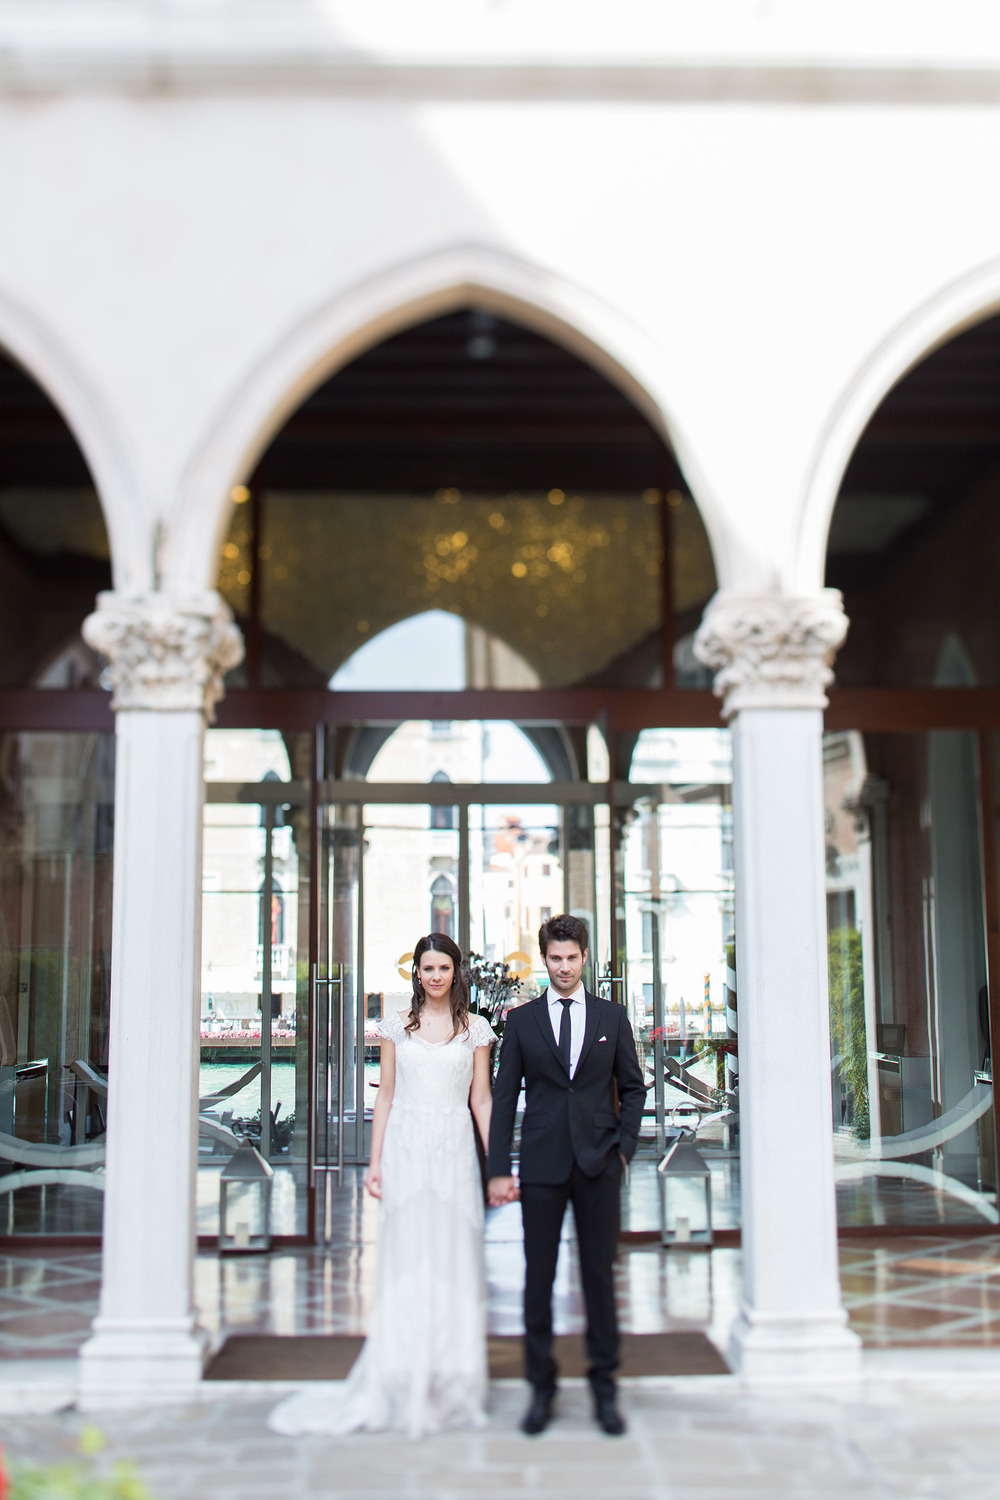 VeniceStyledShoot (93 of 170).jpg